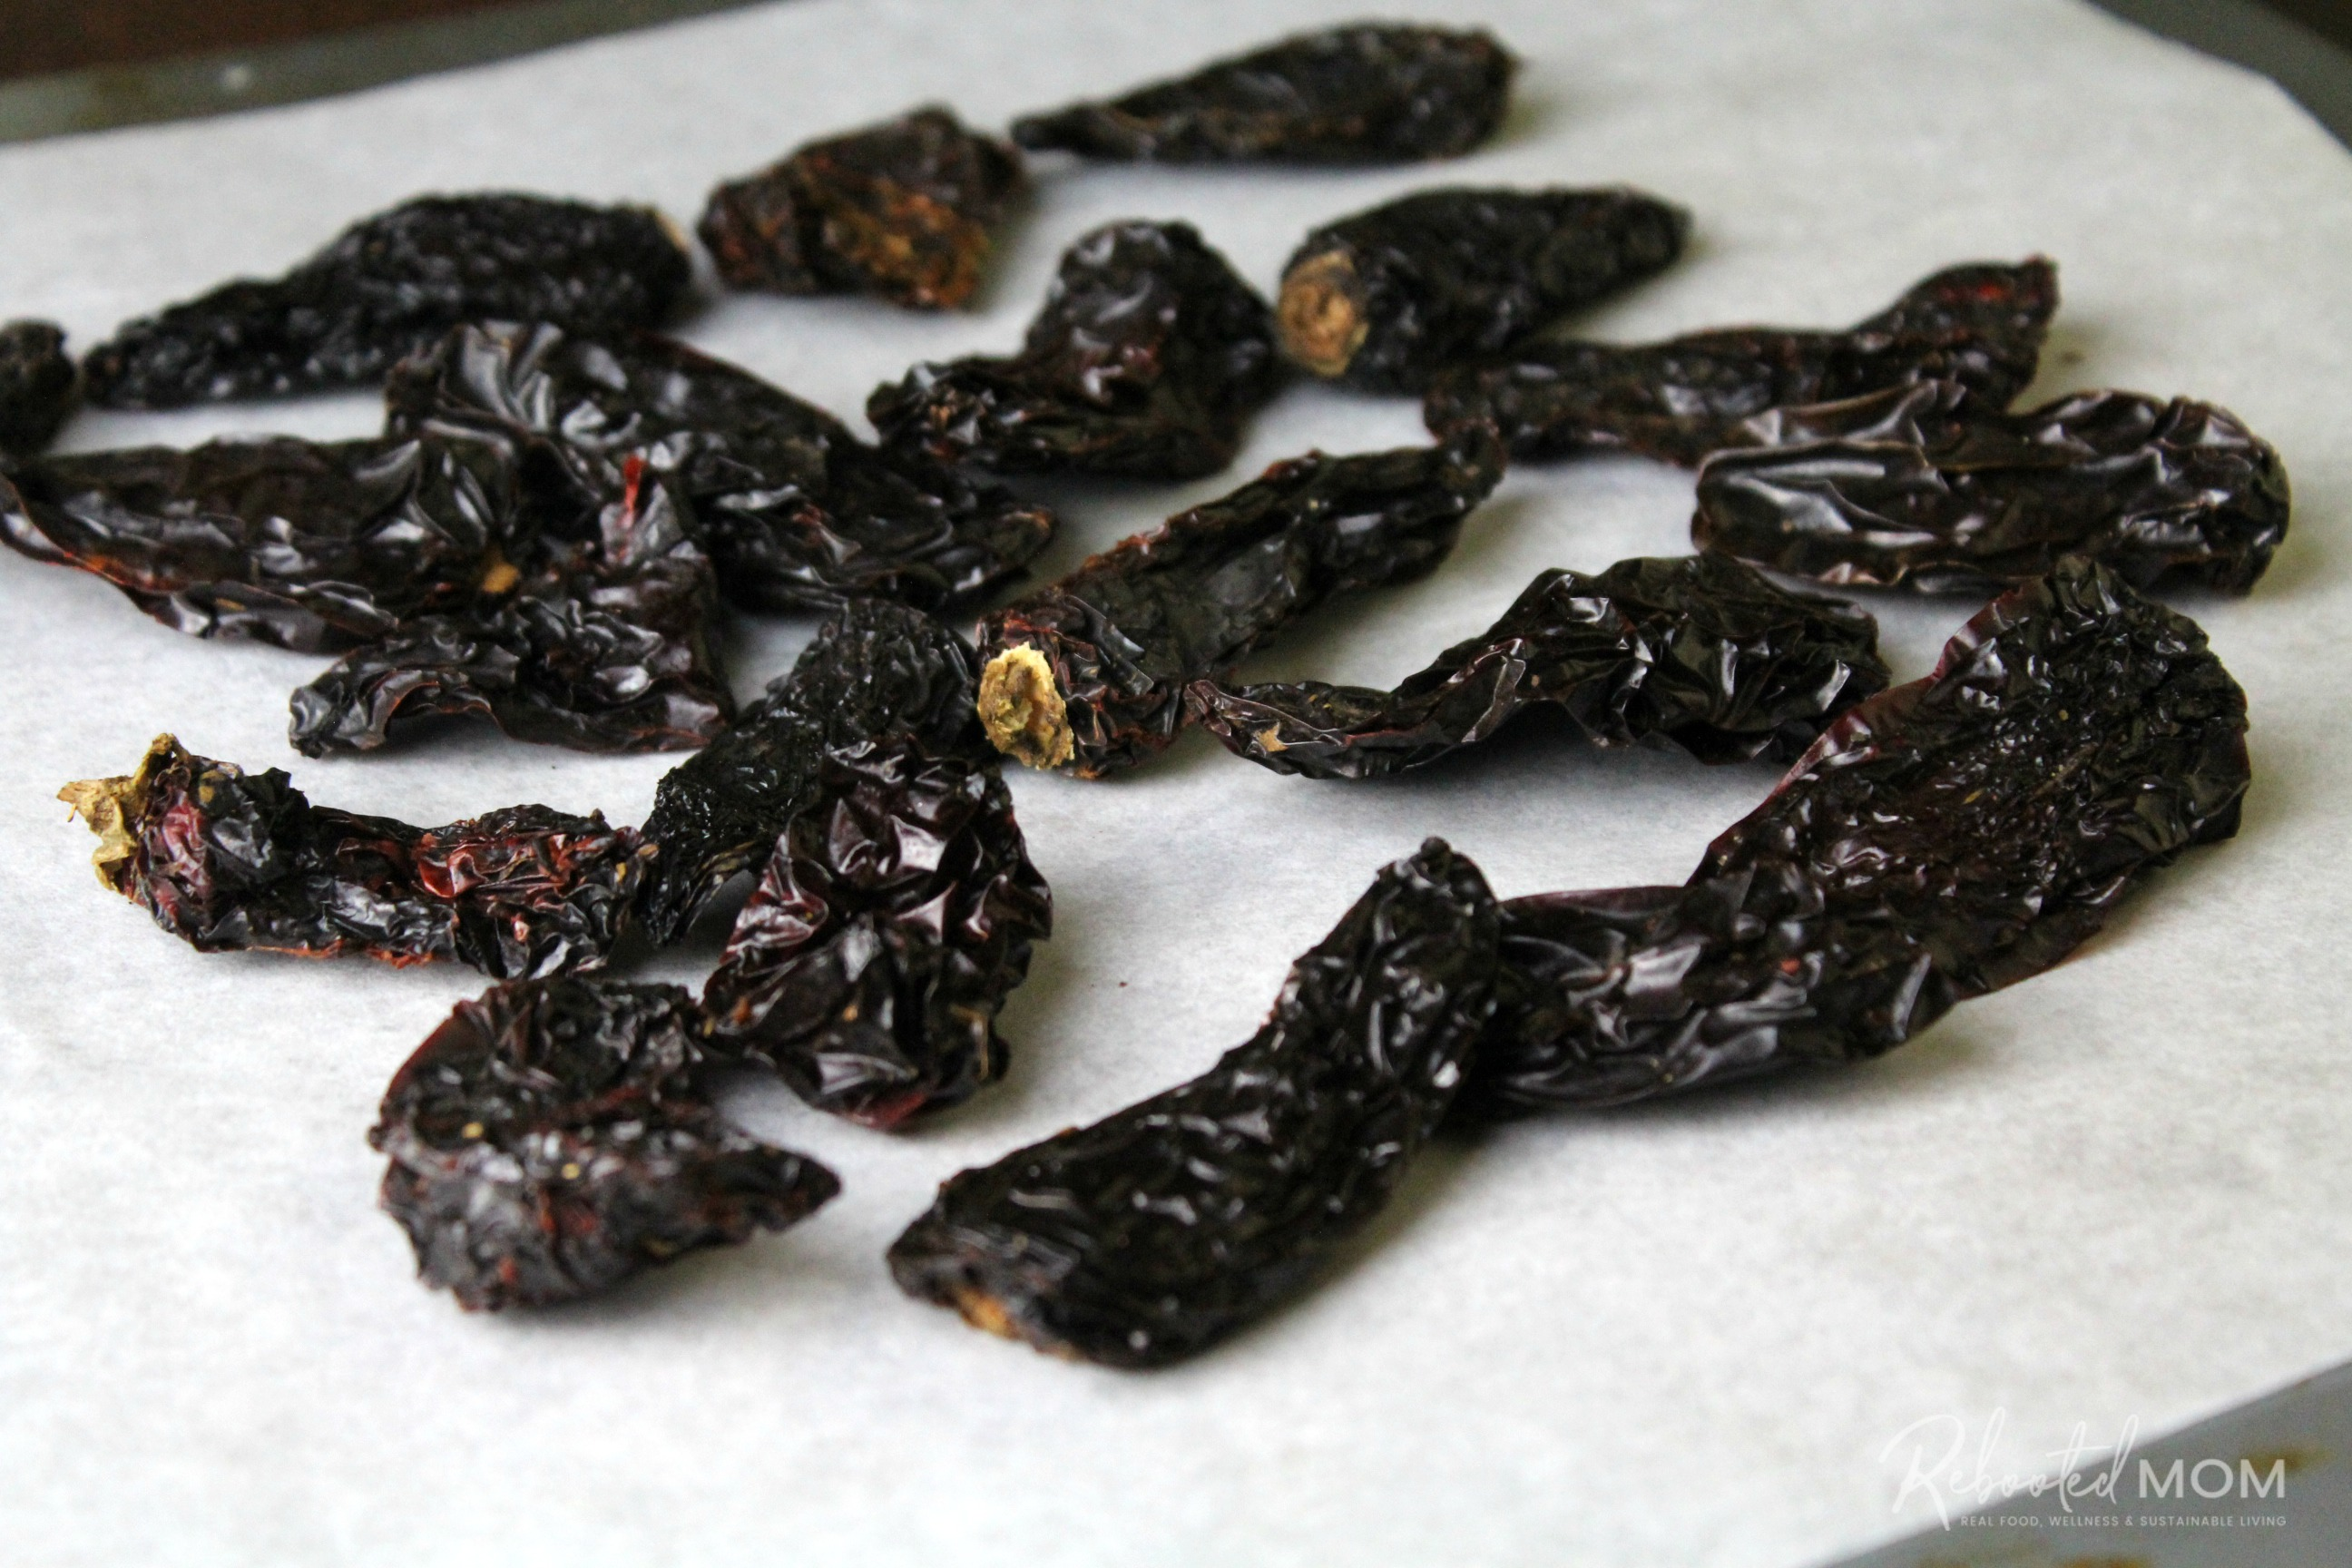 Morita chiles on a baking sheet before roasting